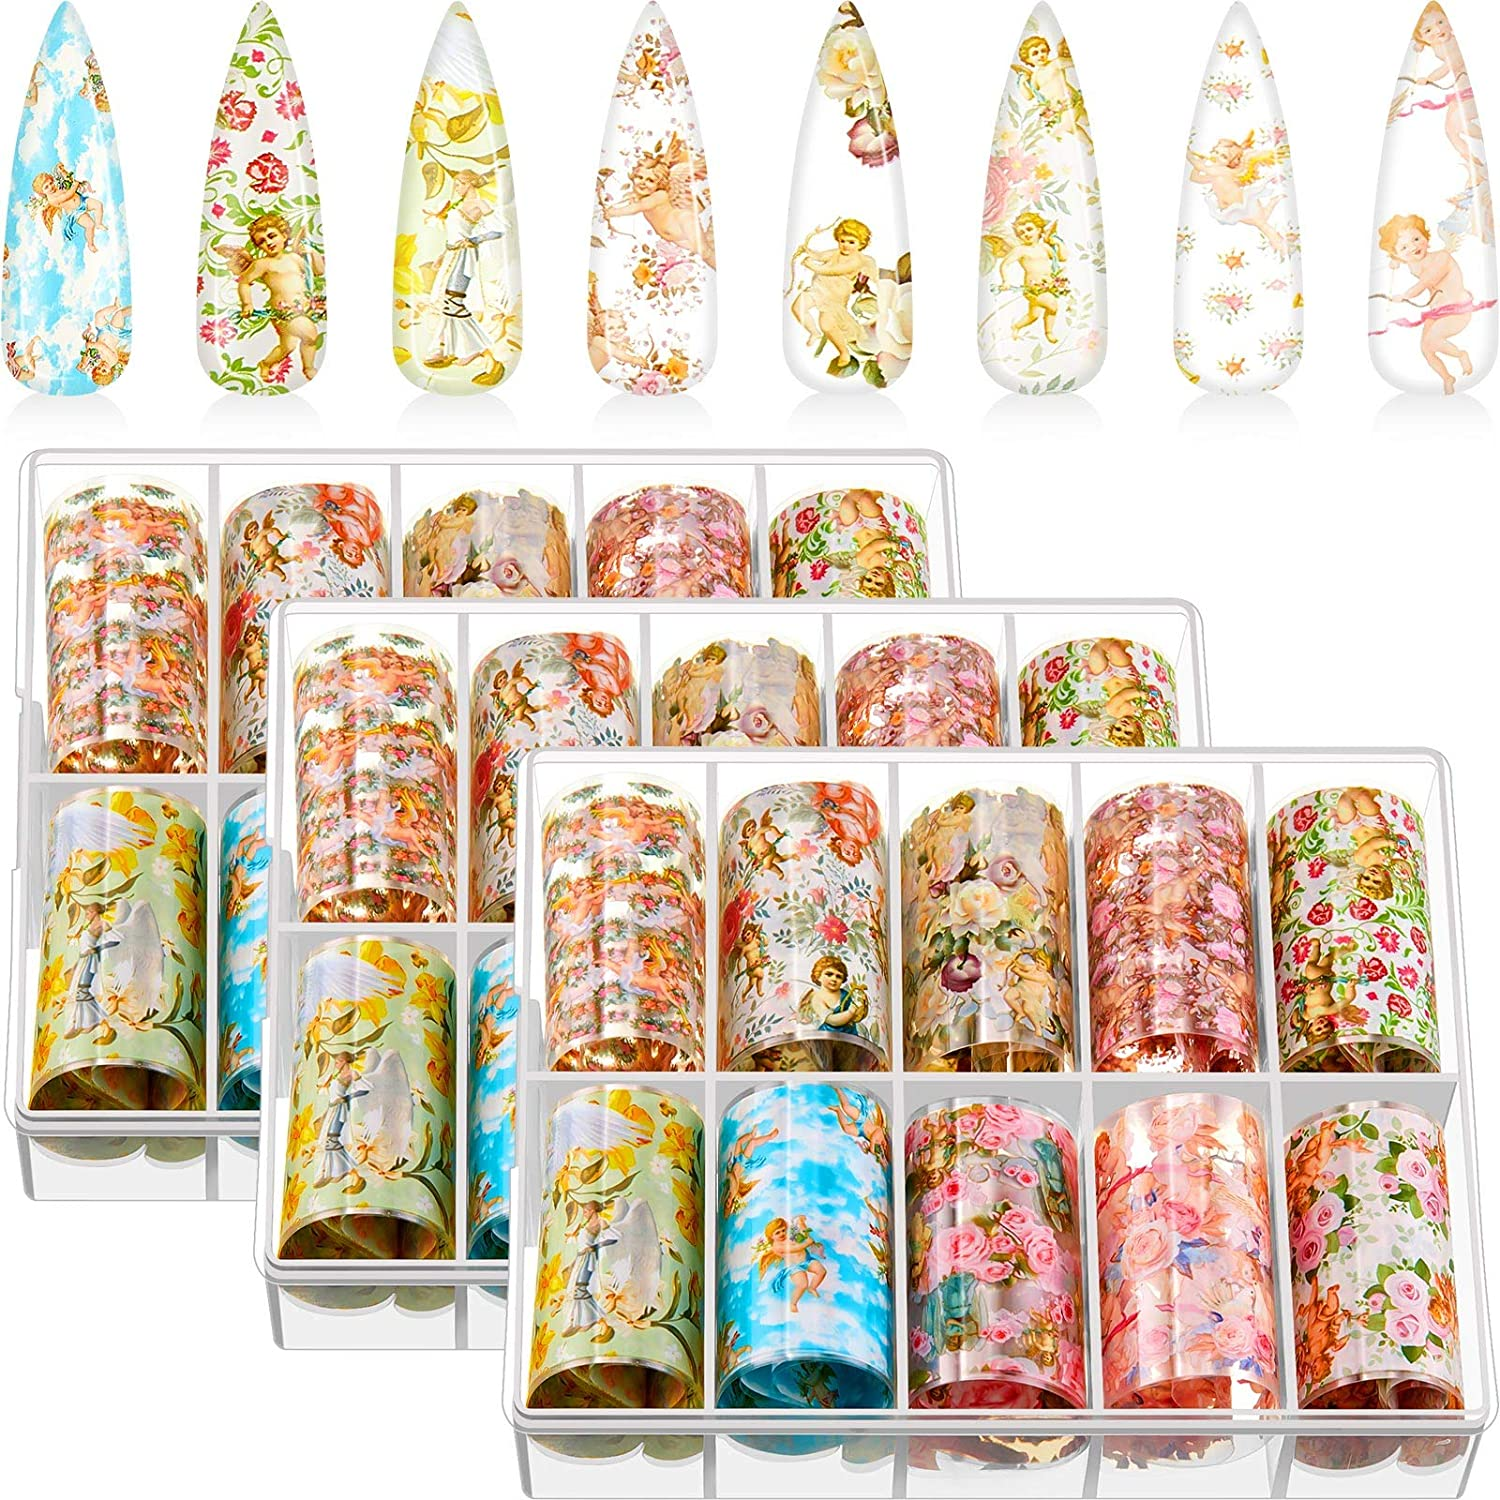 30 Rolls Nail Transfer Stickers Angel and Flower Mixed Style Nail Stickers Transfer Decal Nail Art Decorations Tips Charms Accessories for DIY Nail Decoration, 3 Boxes